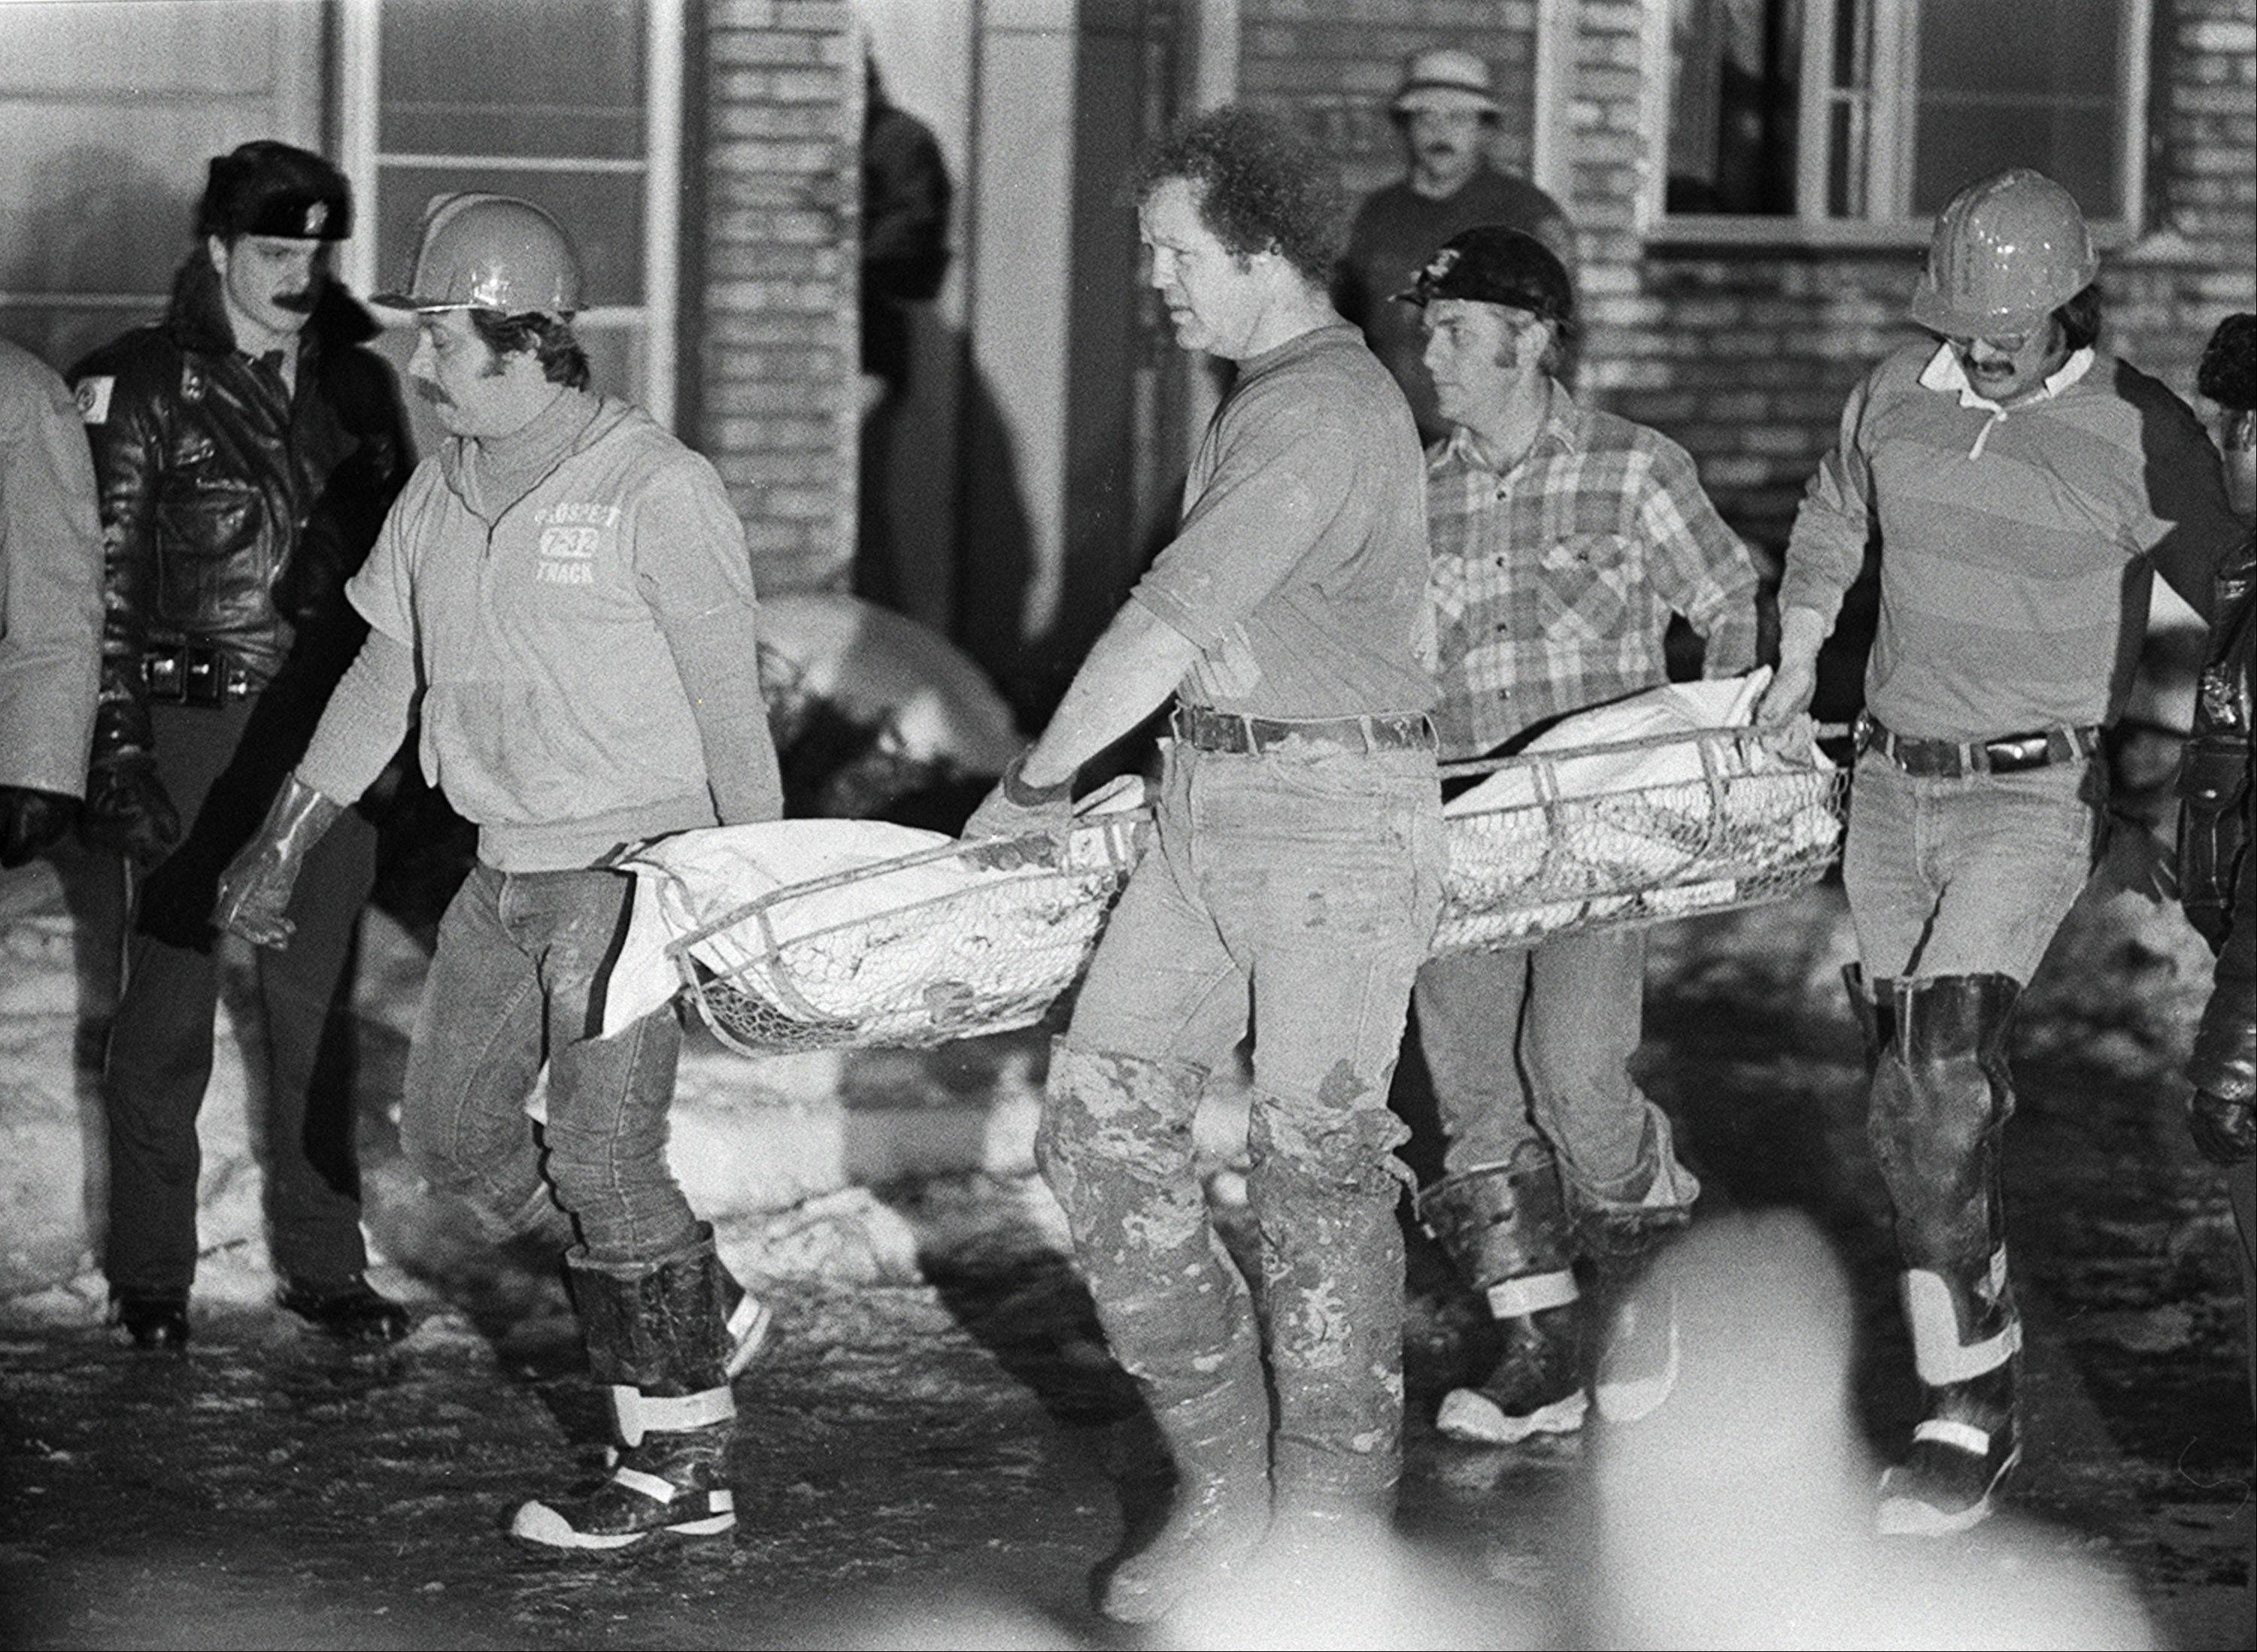 Police officers and firefighters with one of the bodies found in the crawl space of serial killer John Wayne Gacy.